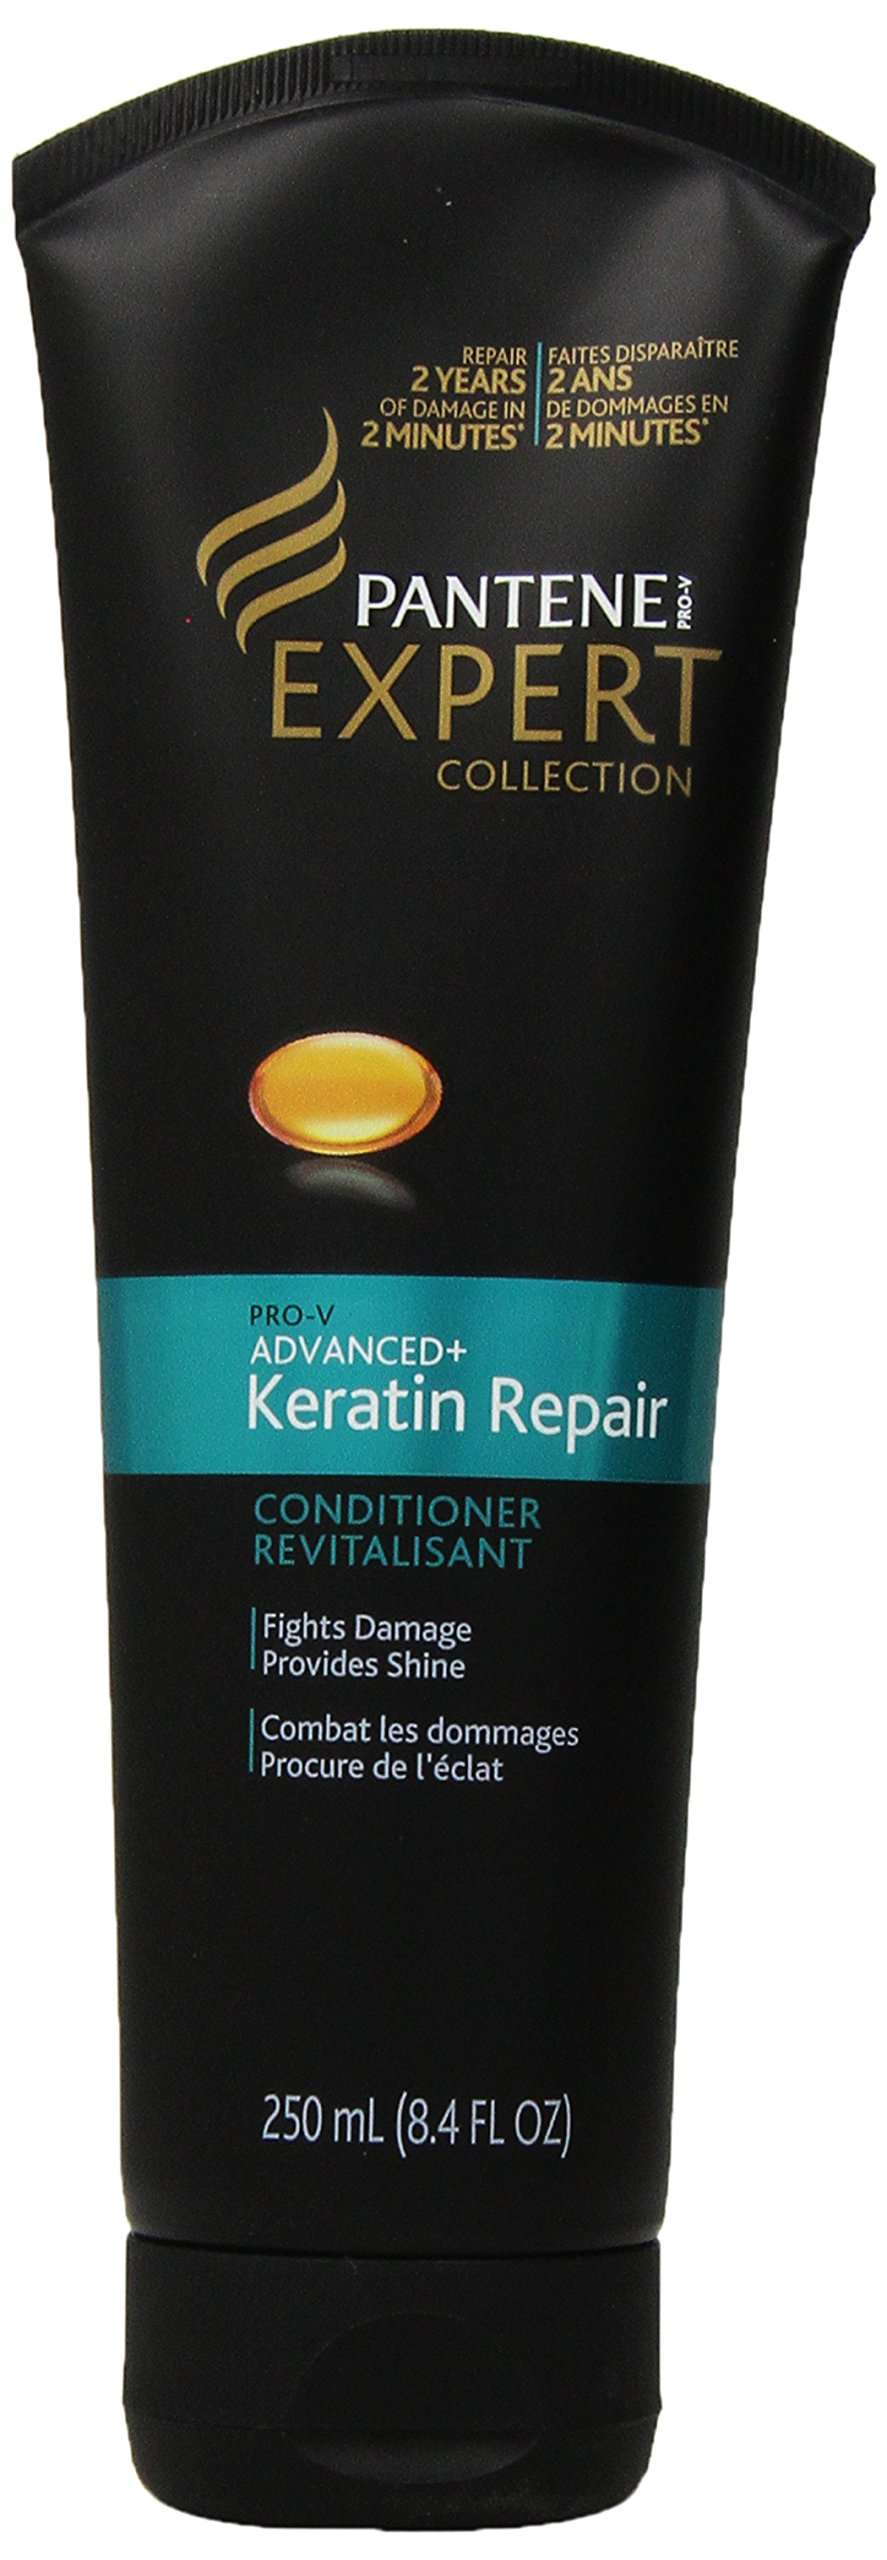 Pantene Pro-V Expert Collection Advanced Keratin Repair Conditioner 8.4 Fl Oz